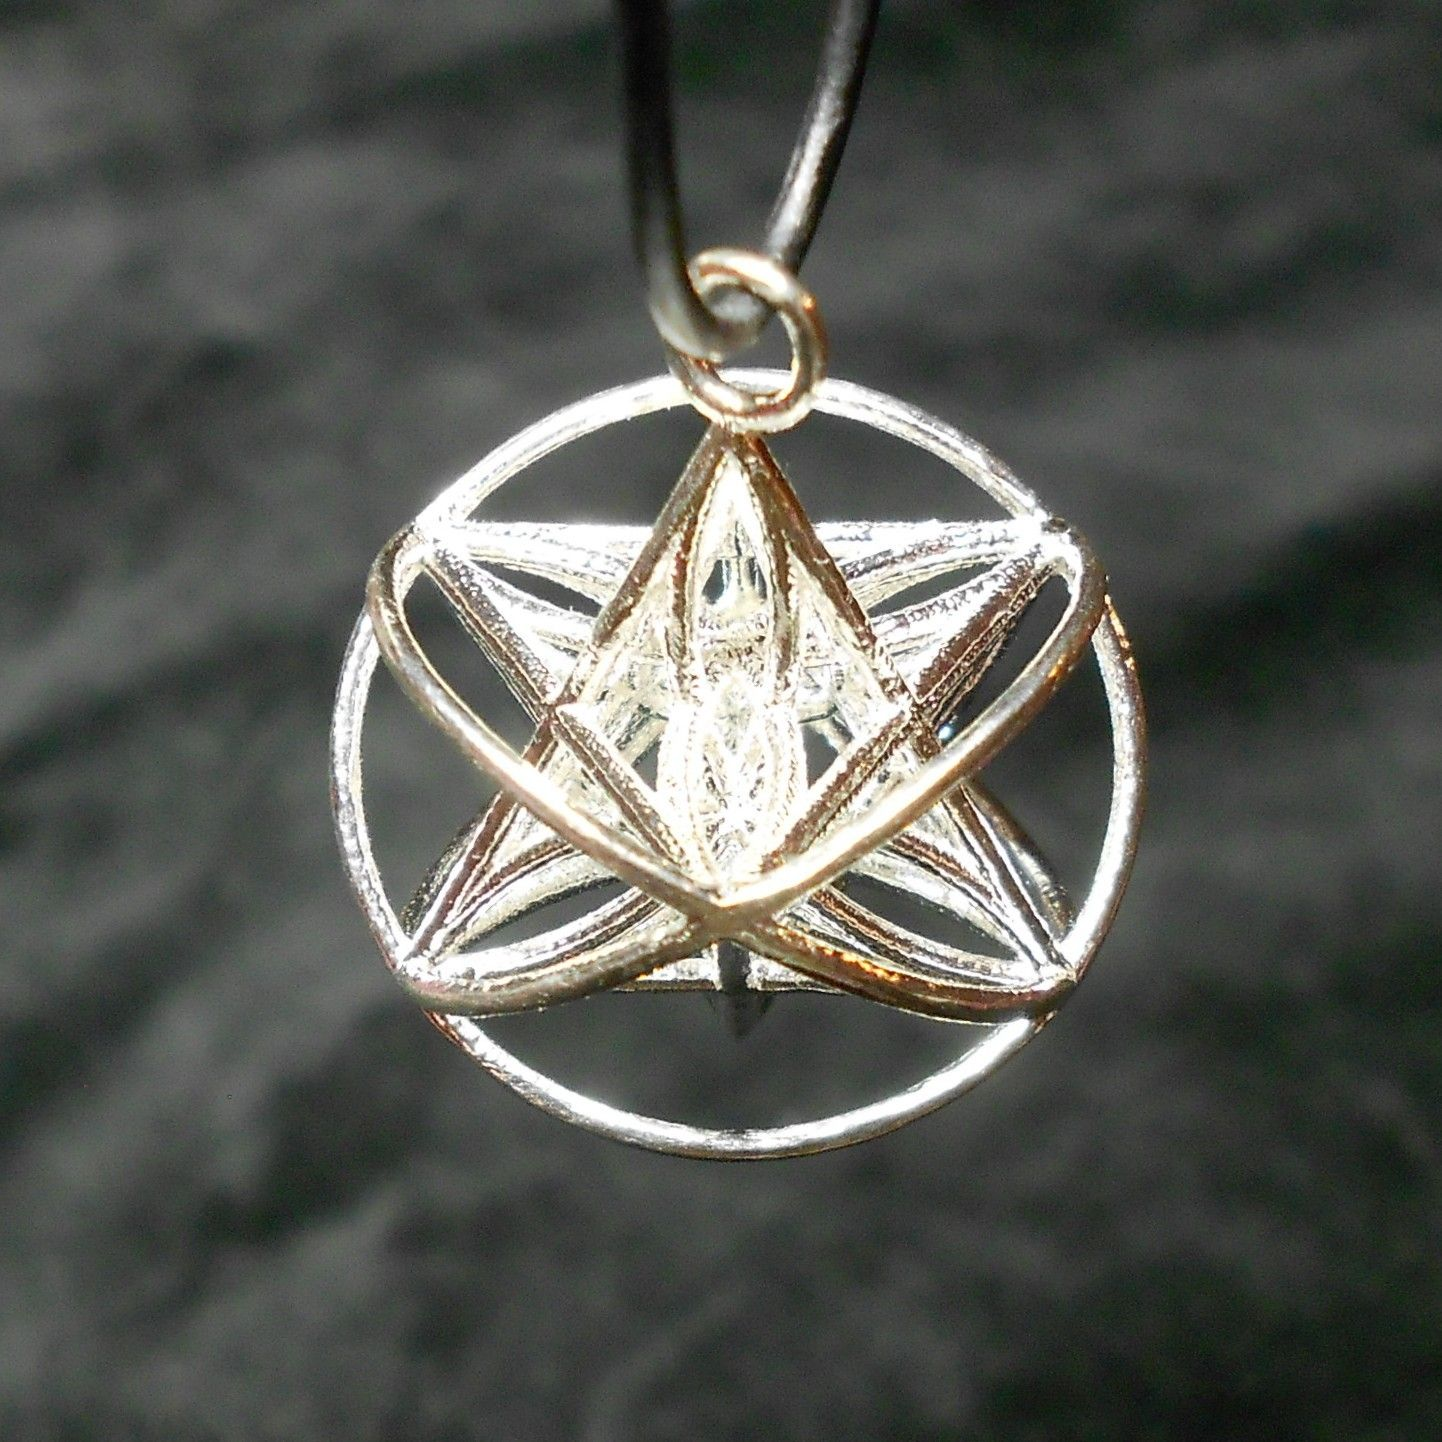 Orbital star of life in silver follow metatronsstargate for more orbital star of life in silver follow metatronsstargate for more aloadofball Image collections